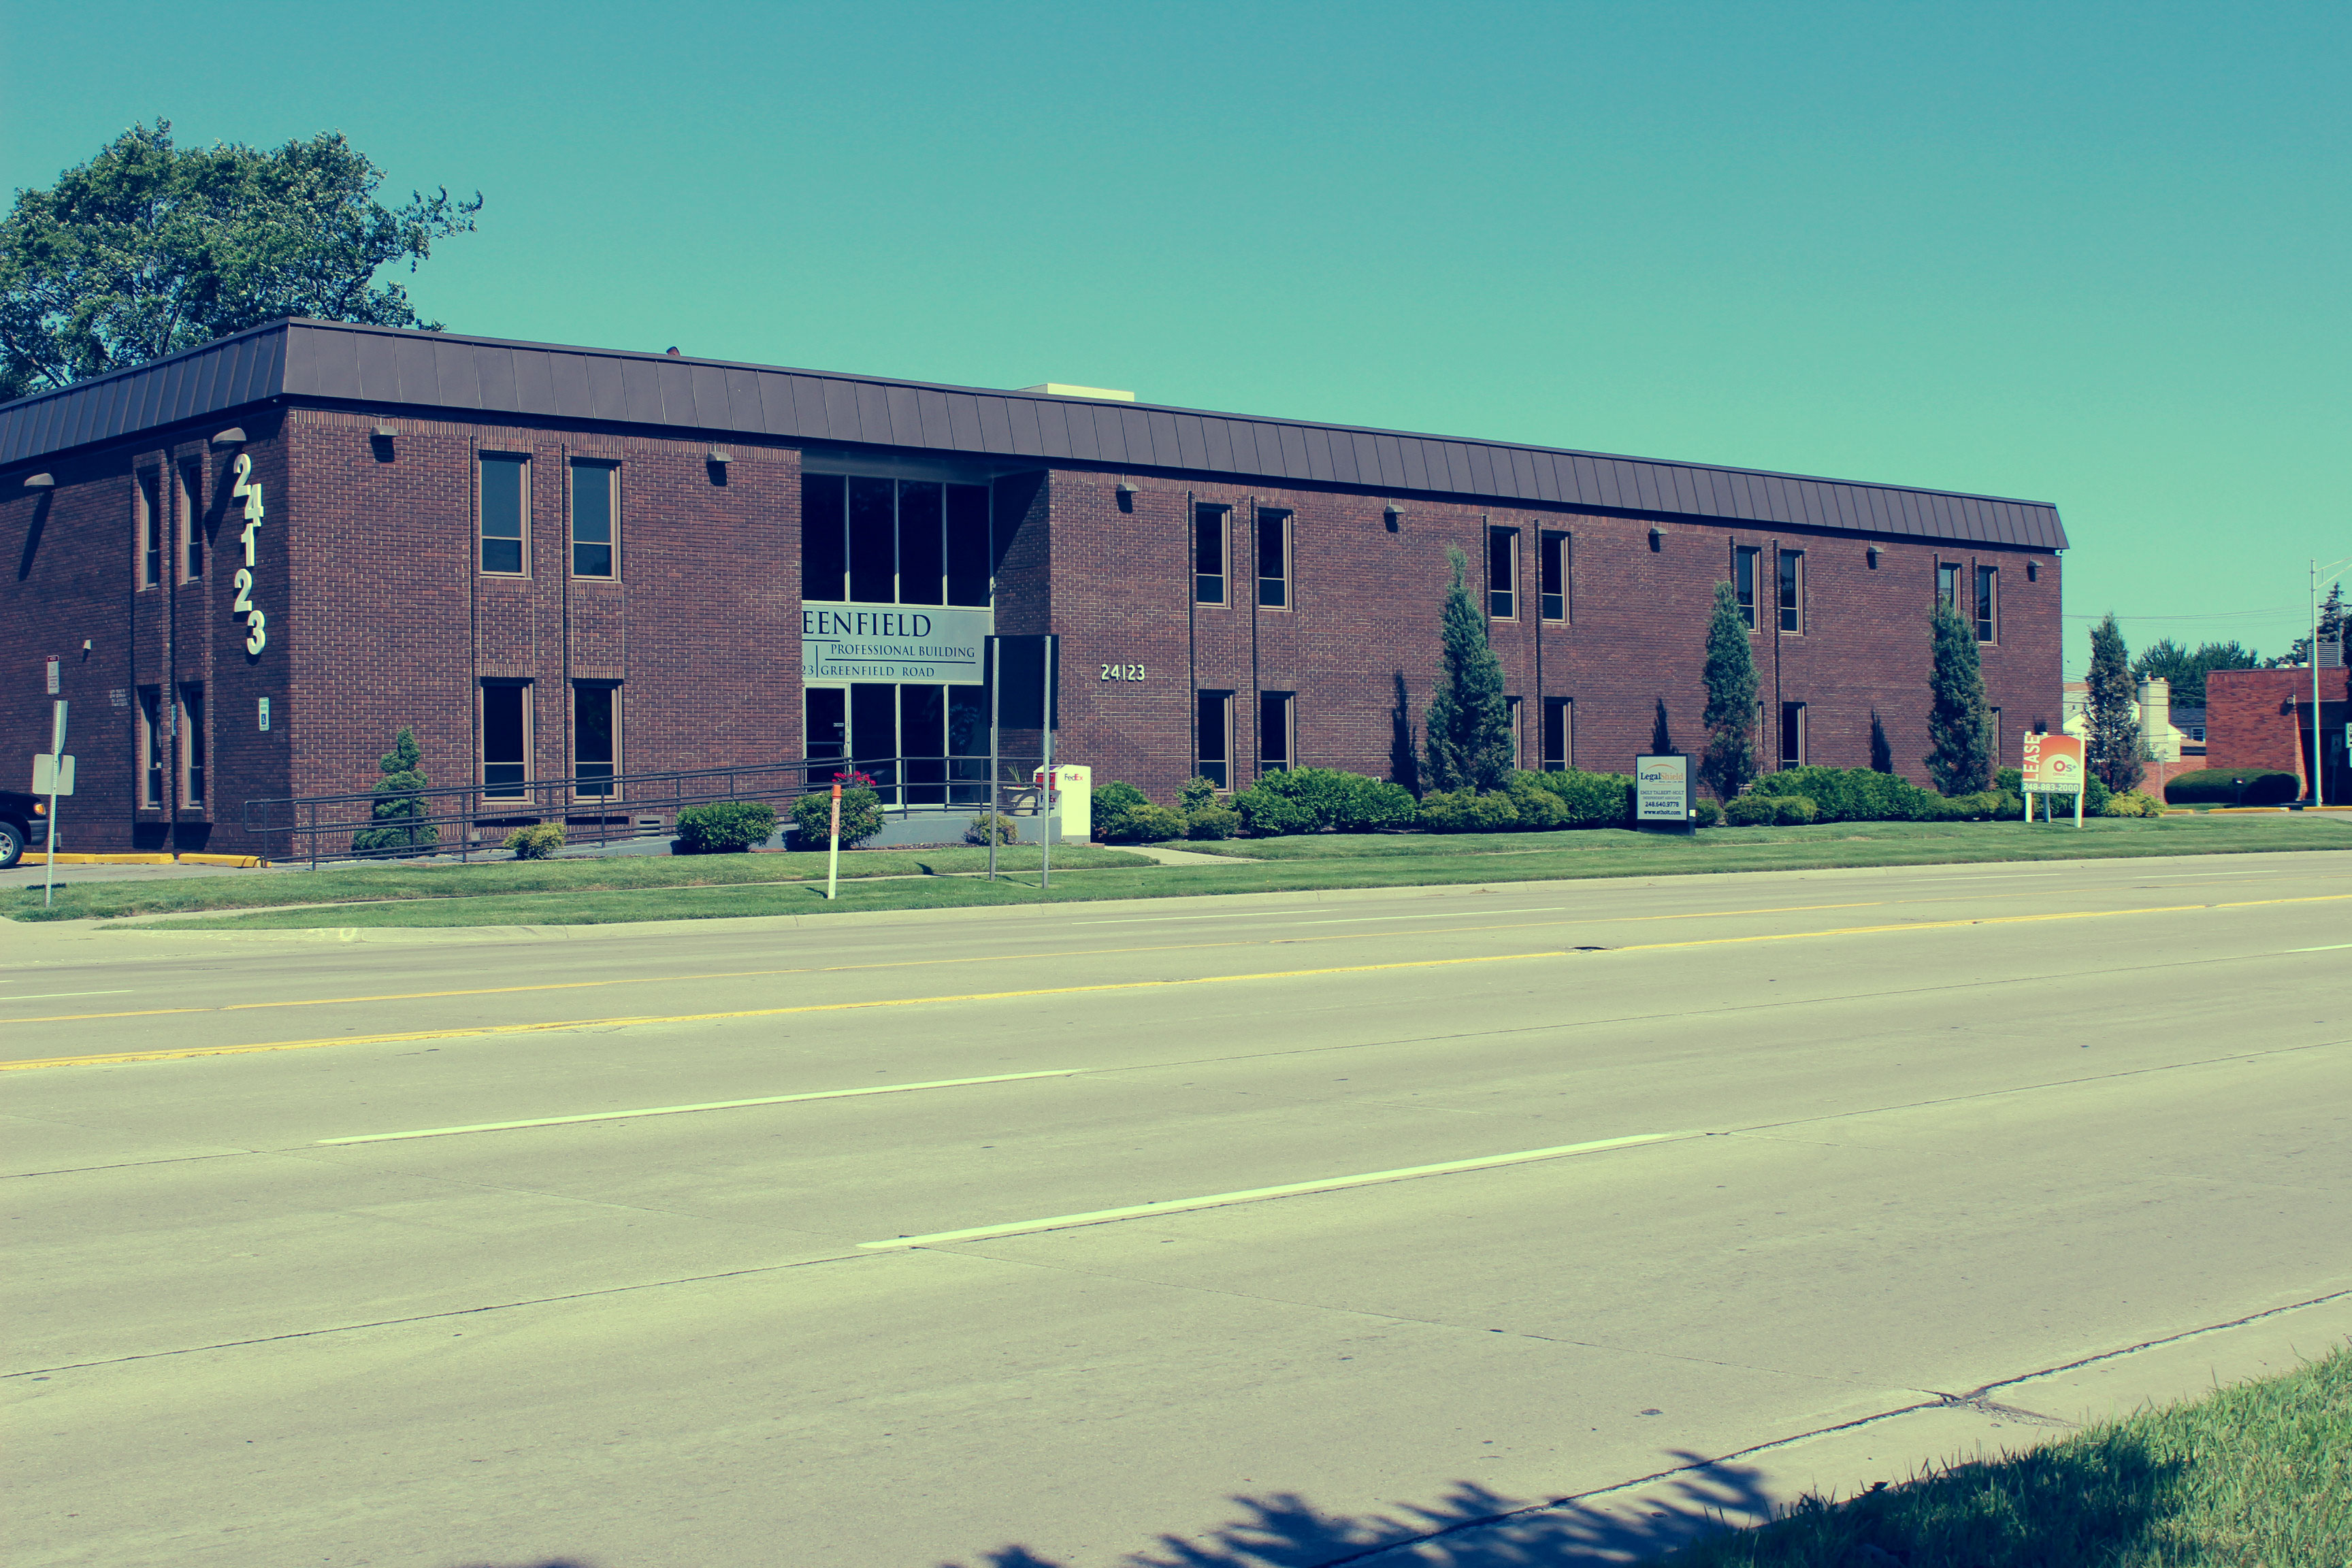 greenfield-pro-building